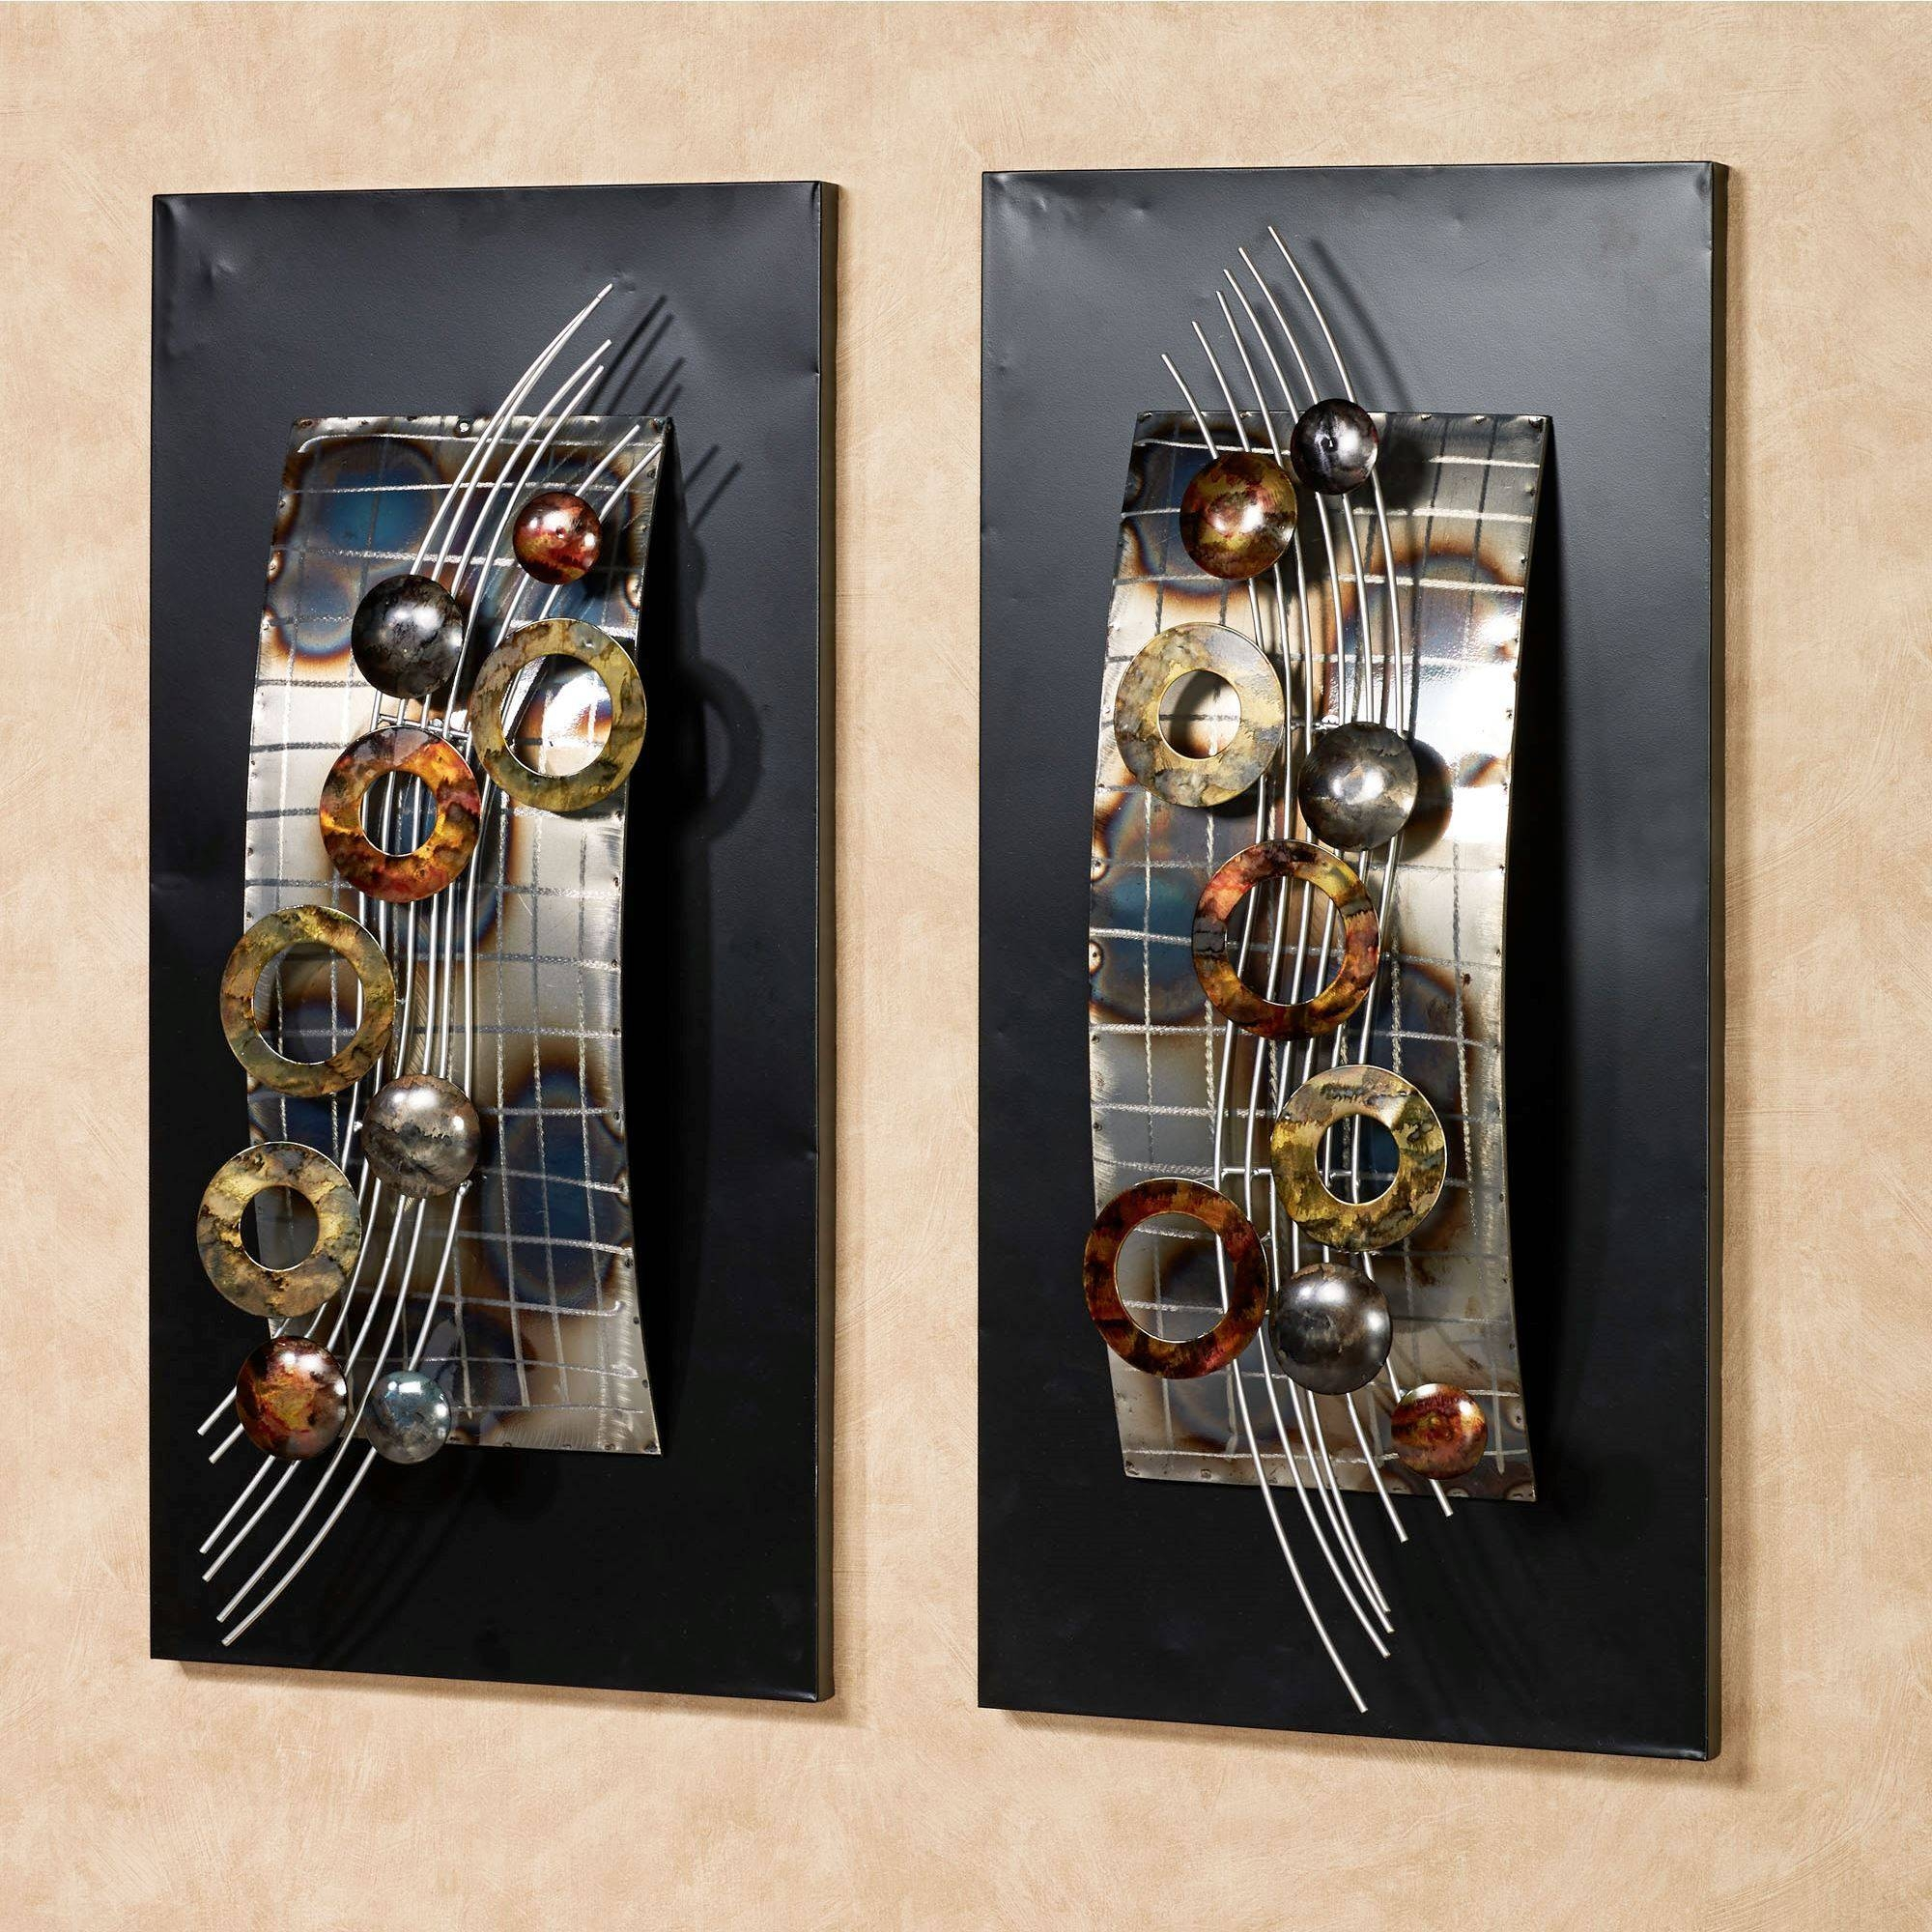 Contemporary Metal Wall Art Sculptures | Touch Of Class Throughout Current Swirl Metal Wall Art (View 2 of 20)